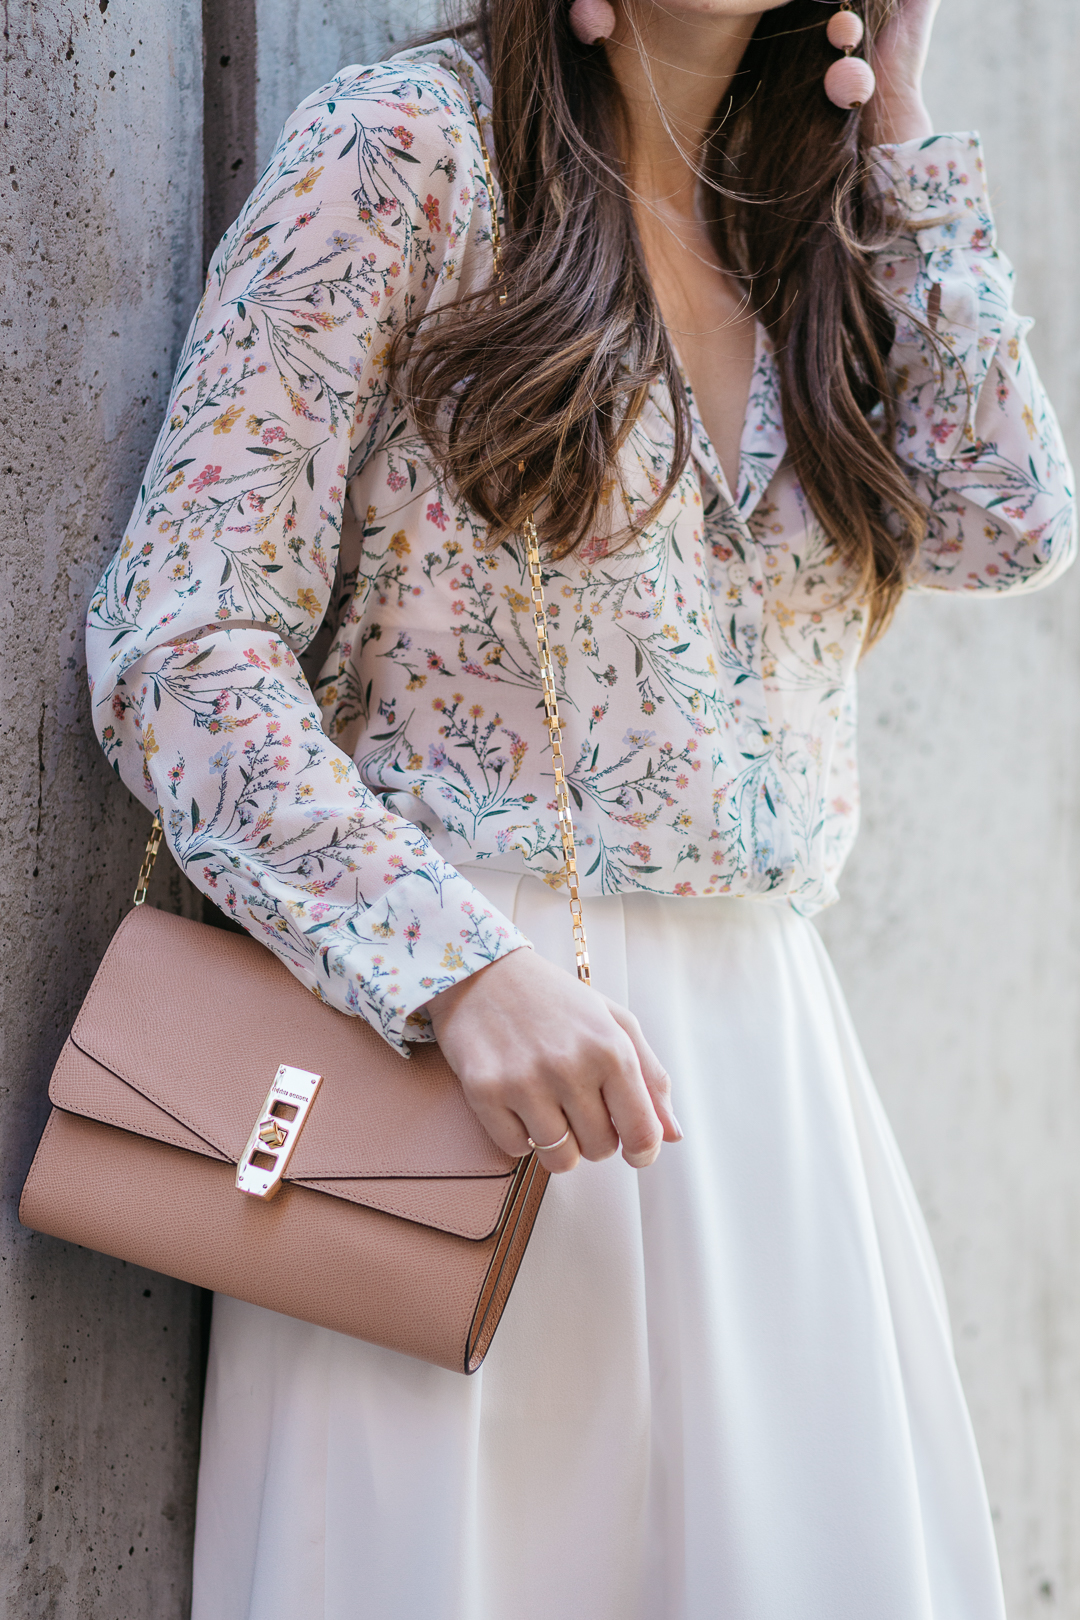 The perfect blush pink bag from Henri Bendel